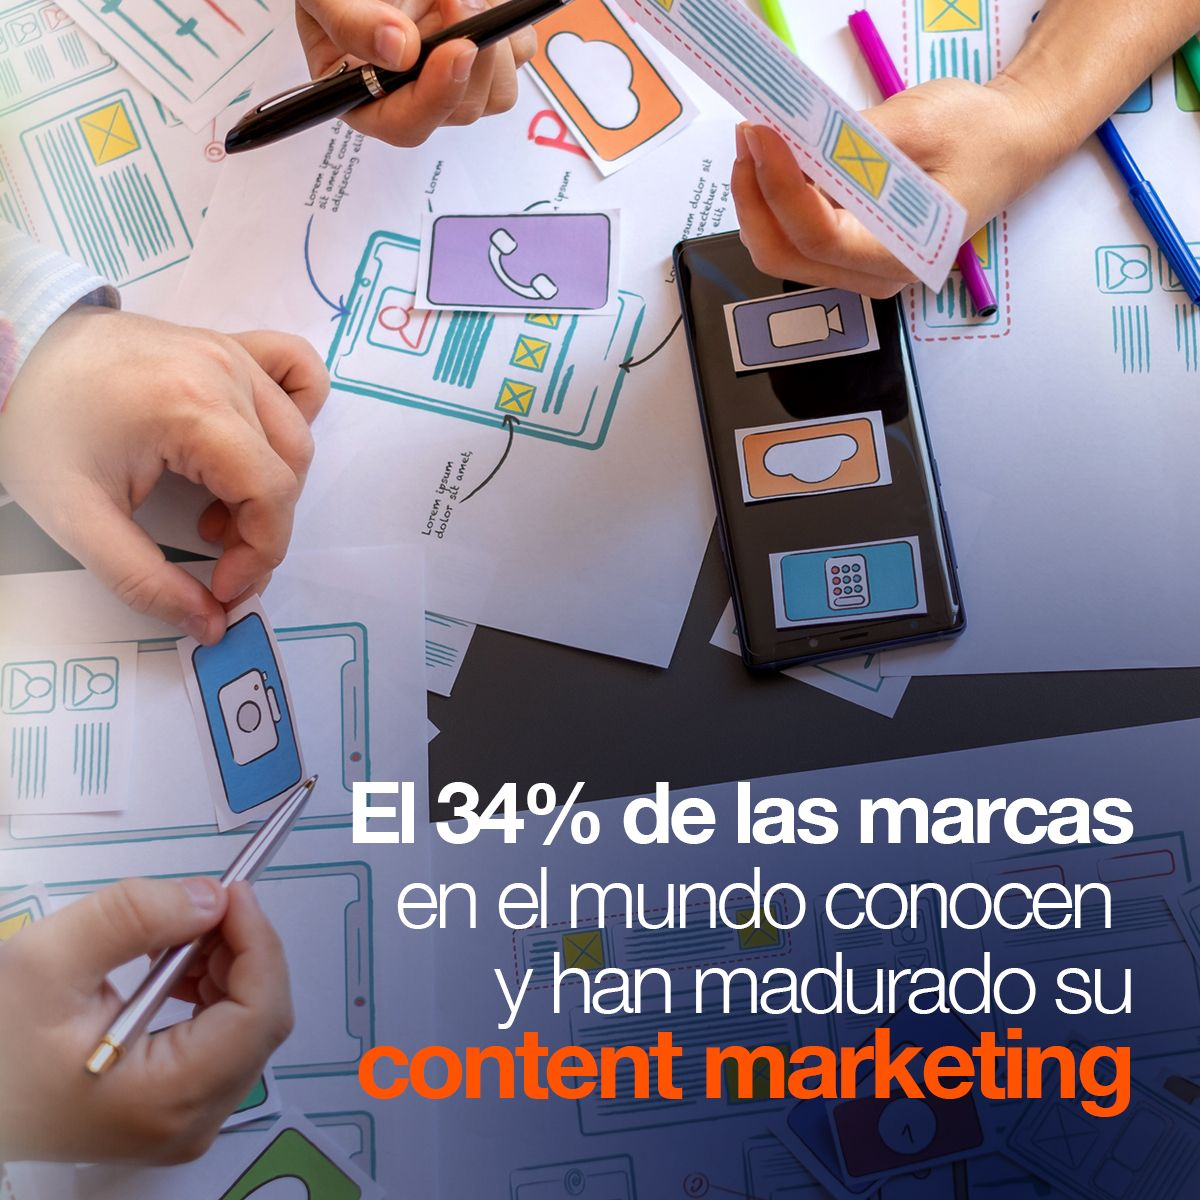 El 34% de las marcas en el mundo conocen y han madurado su content marketing